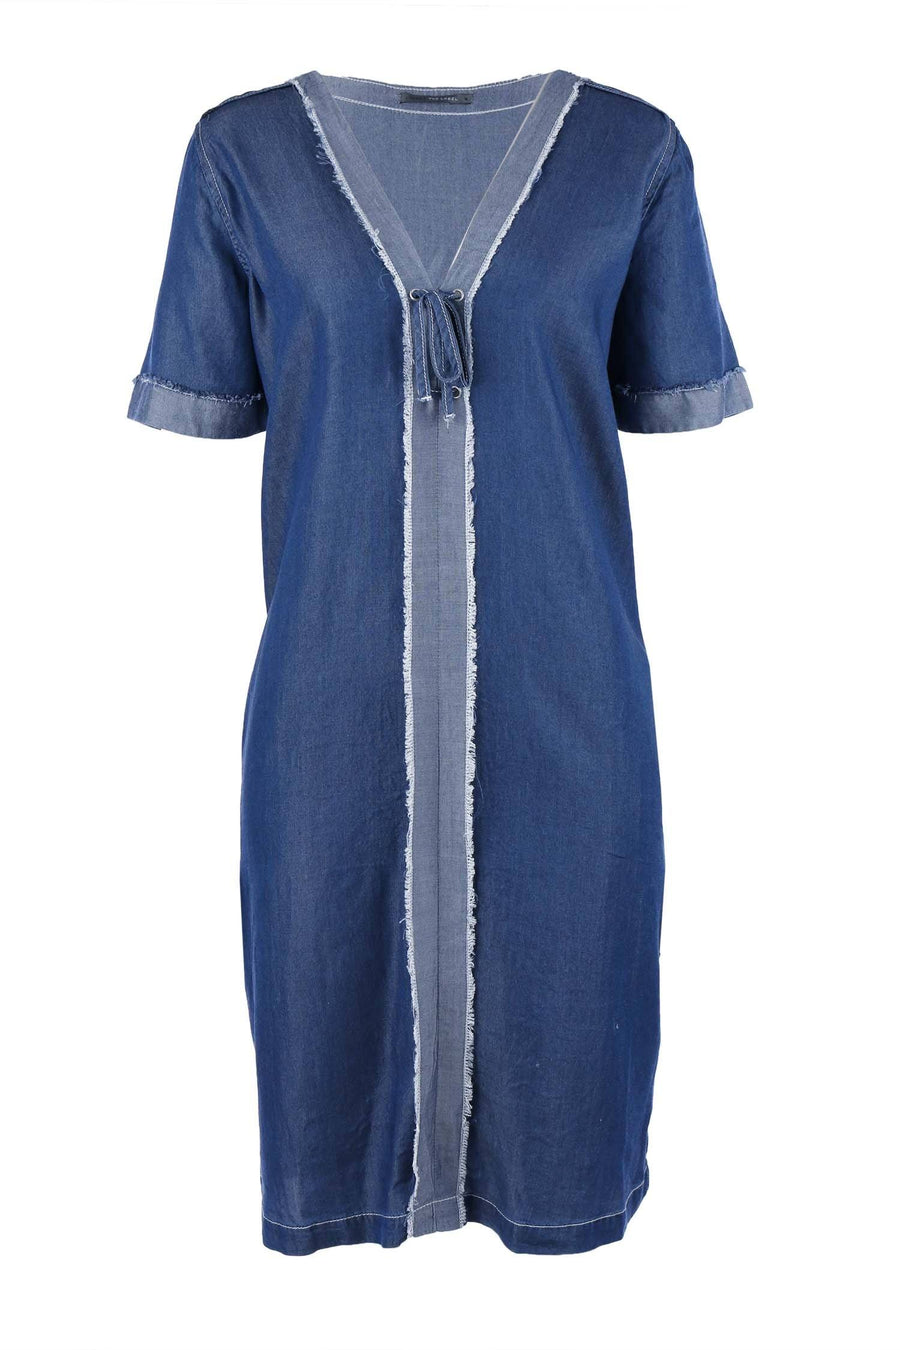 Shop Online Marche Dress in Indigo | FINAL SALE by Lounge  Frockaholics Dresses